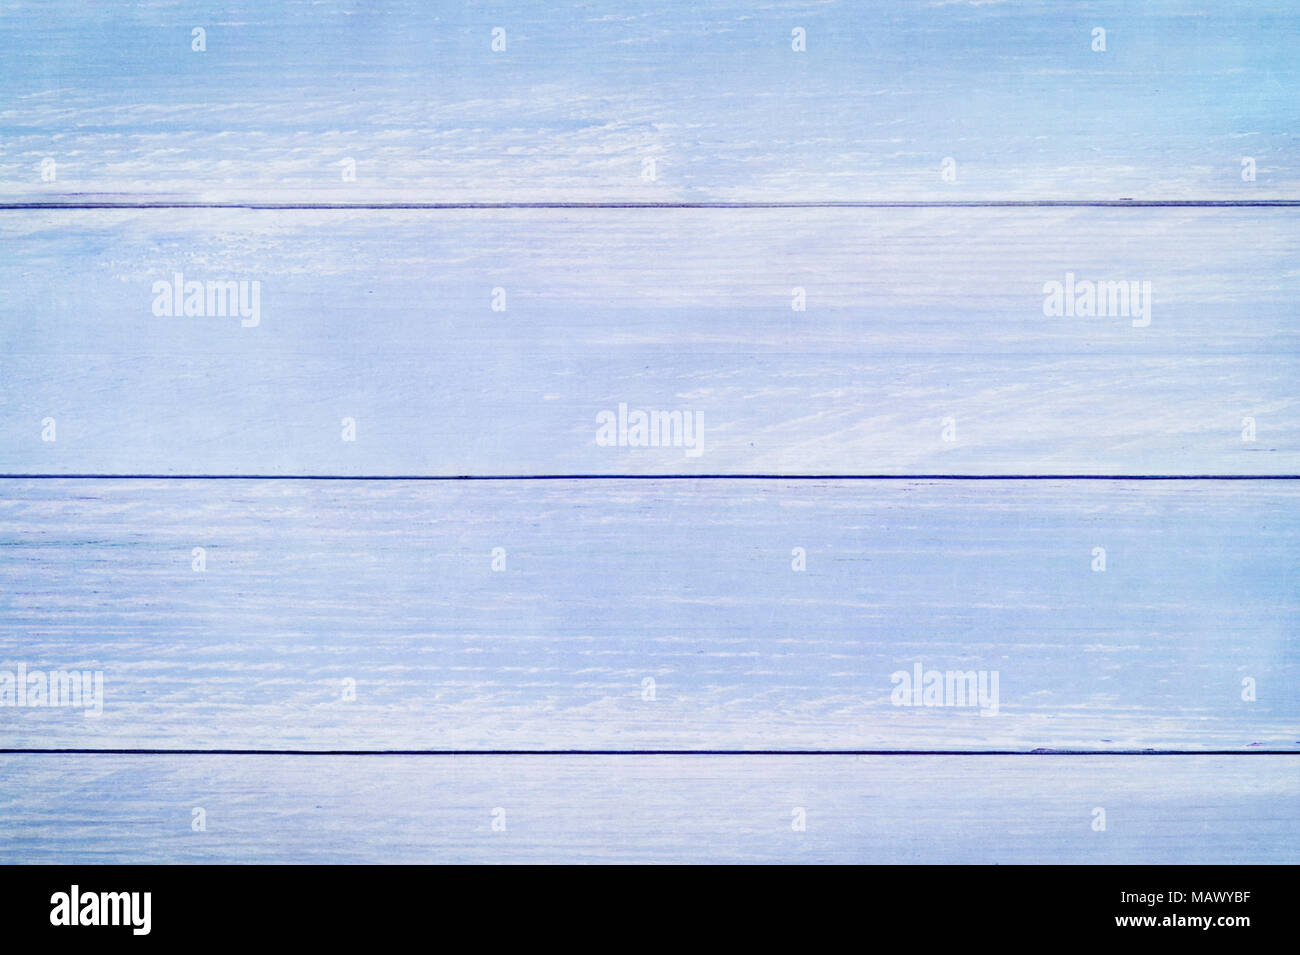 Wooden planks background with copy space. Planks or wooden table background or backdrop. - Stock Image